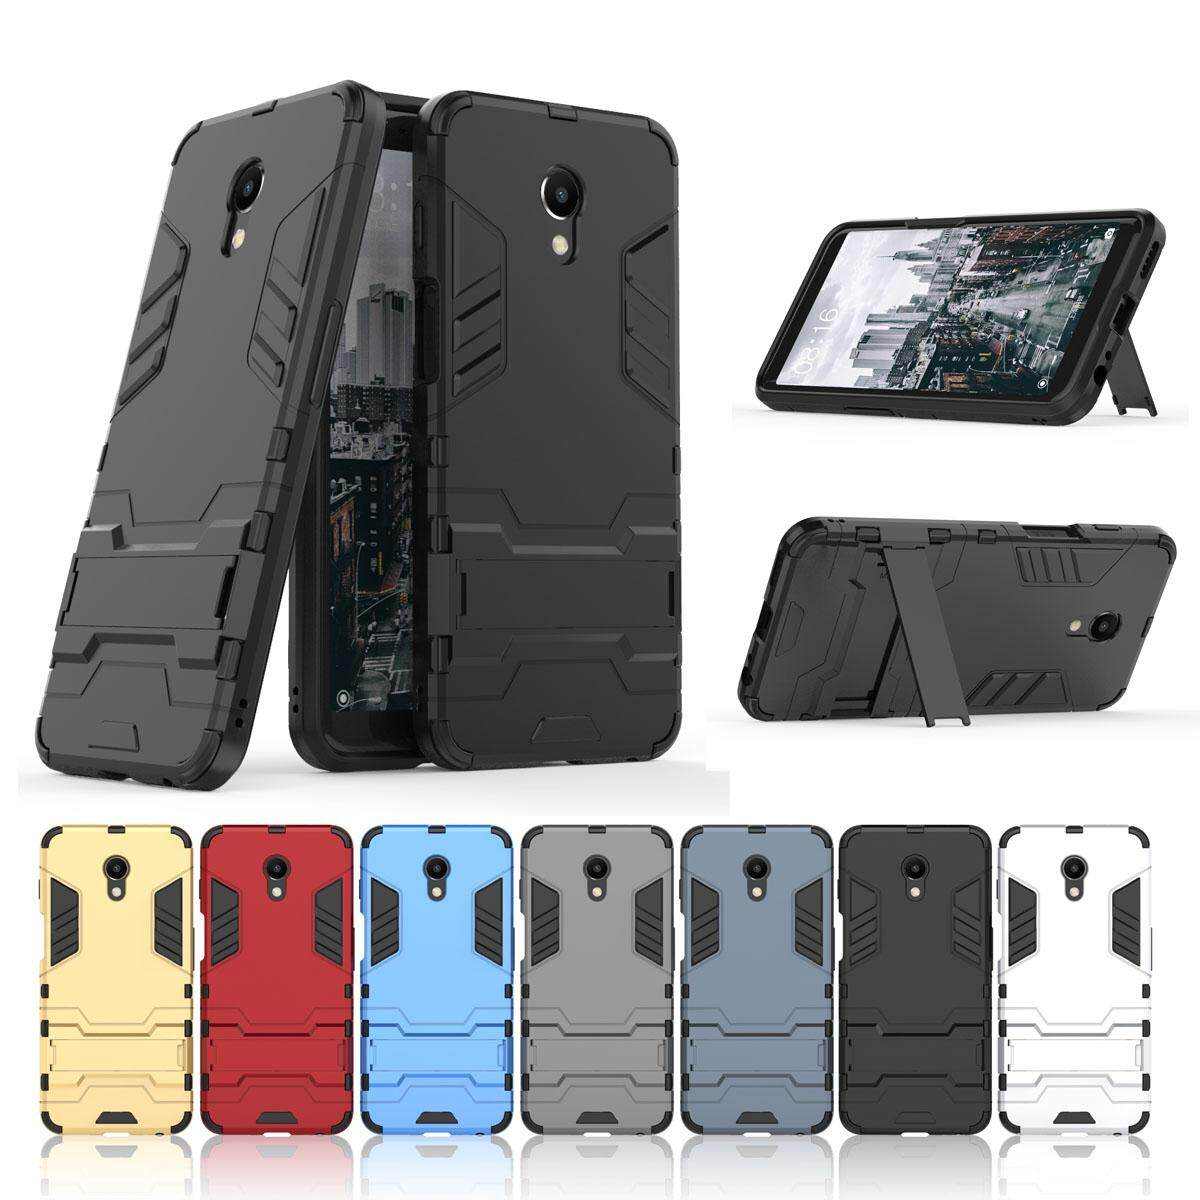 Buy Sell Cheapest Meizu Meilan S6 Best Quality Product Deals M6 Case Iron Armor Casing Cover Moonmini For M6s Cool Designed Dual Layer Hybrid With Kickstand Shockproof